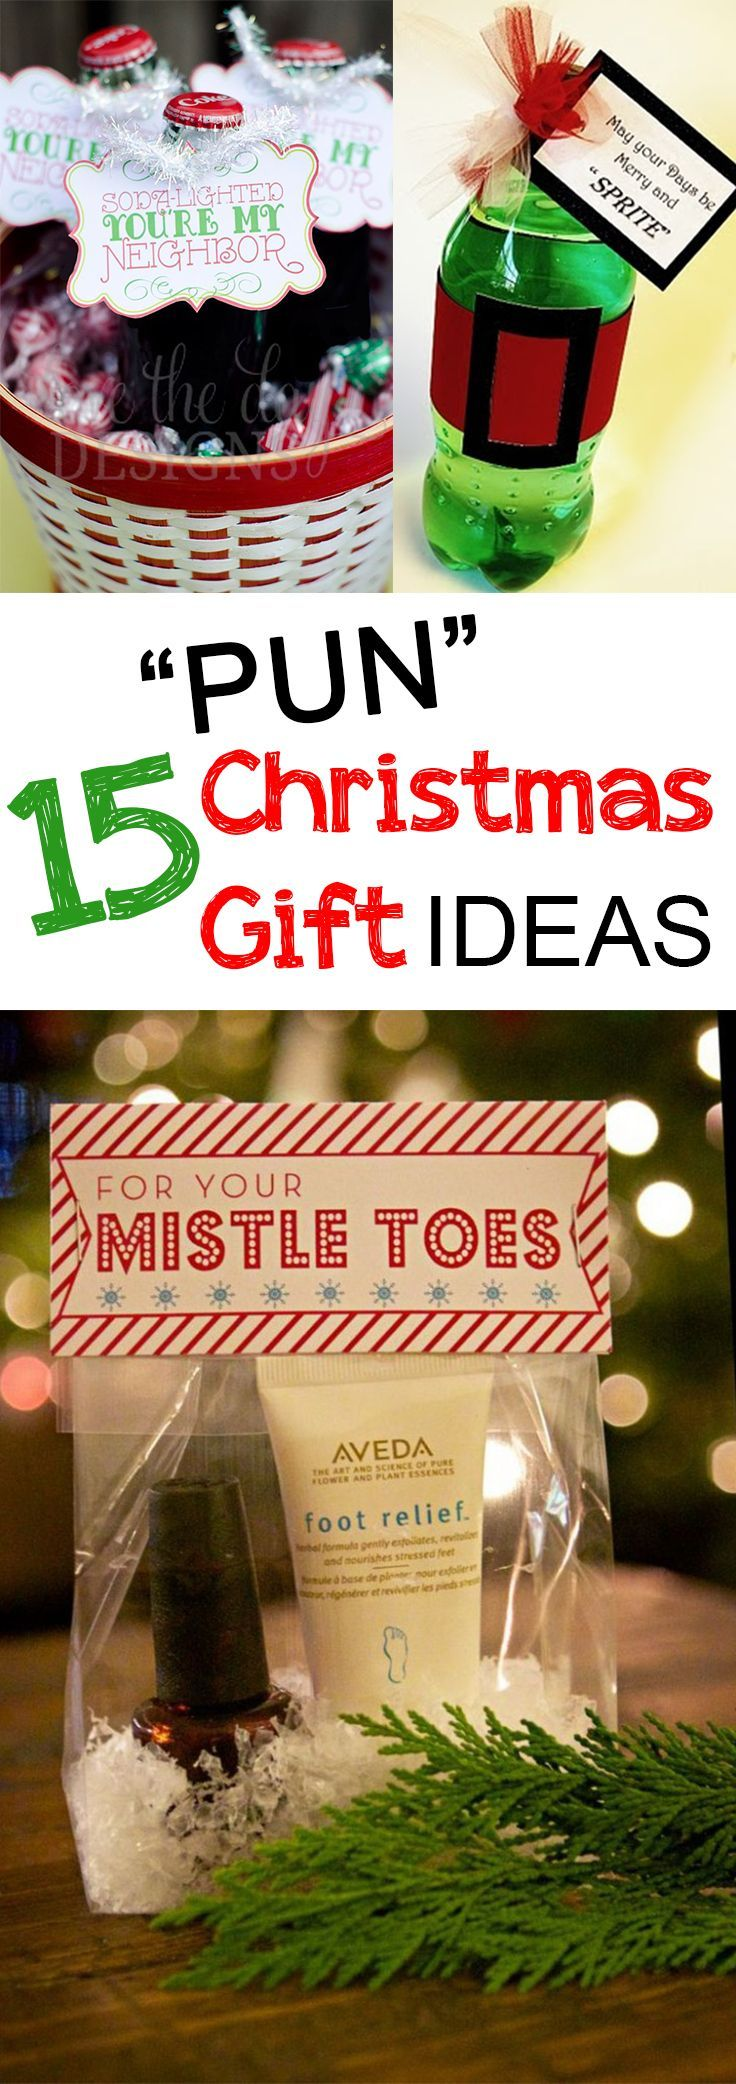 Christmas ideas for large groups for Christmas present ideas on a budget